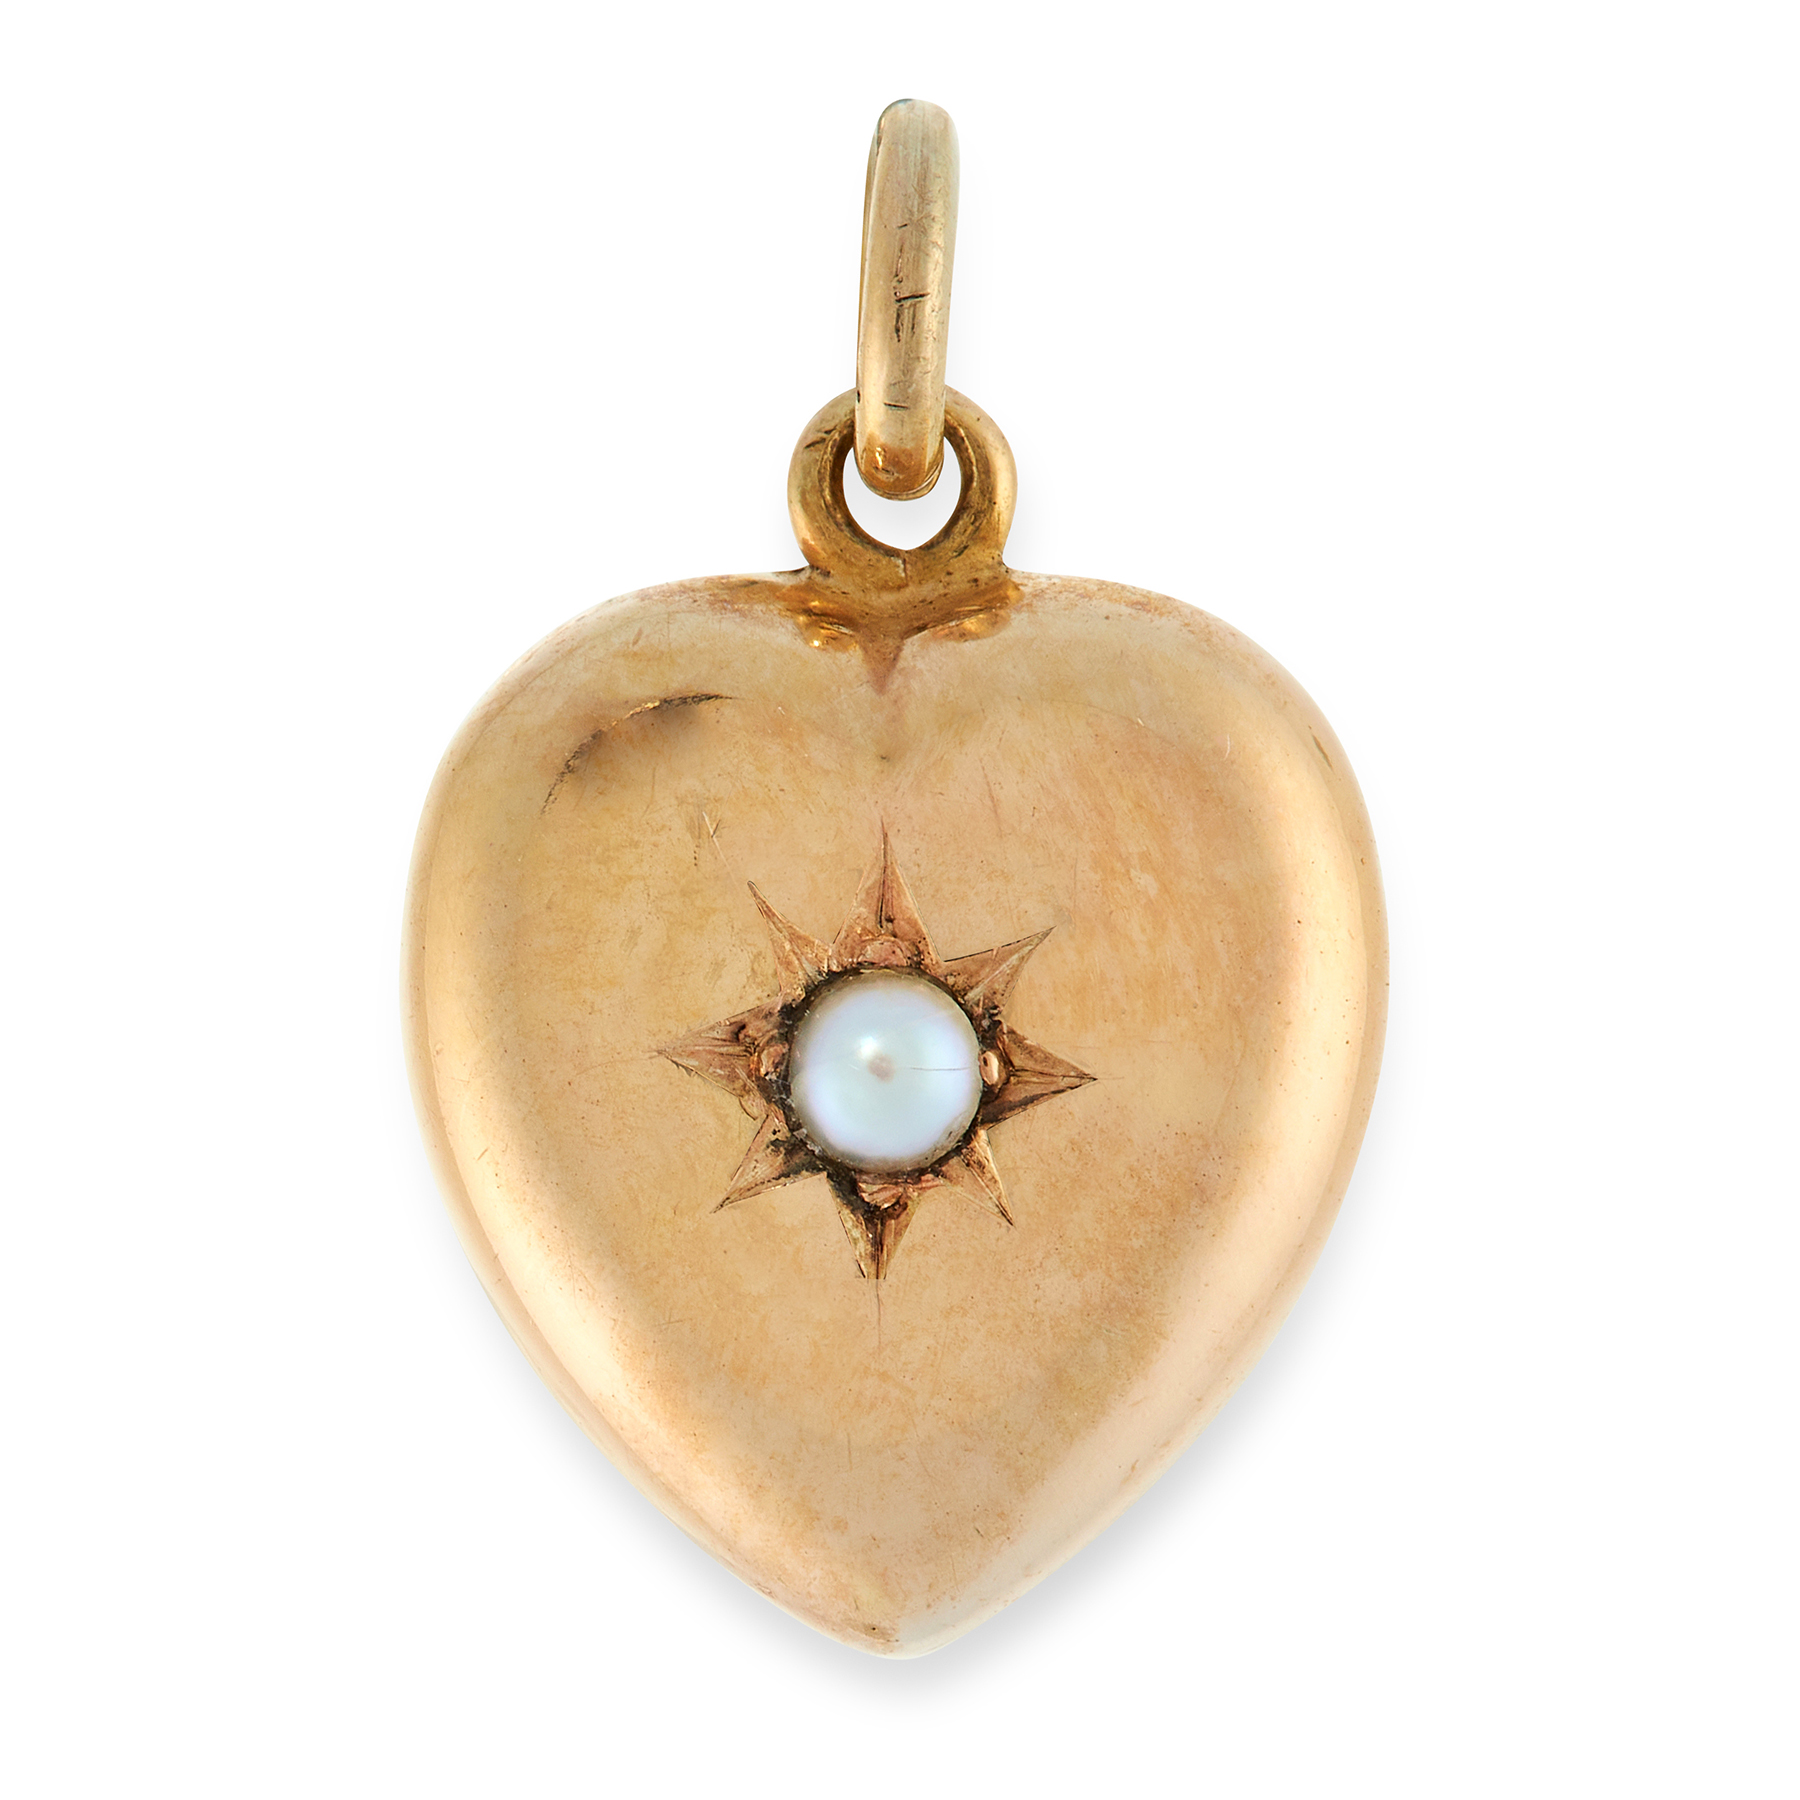 AN ANTIQUE PEARL HEART PENDANT in 15ct yellow gold, in the form of a heart set with a pearl, stamped